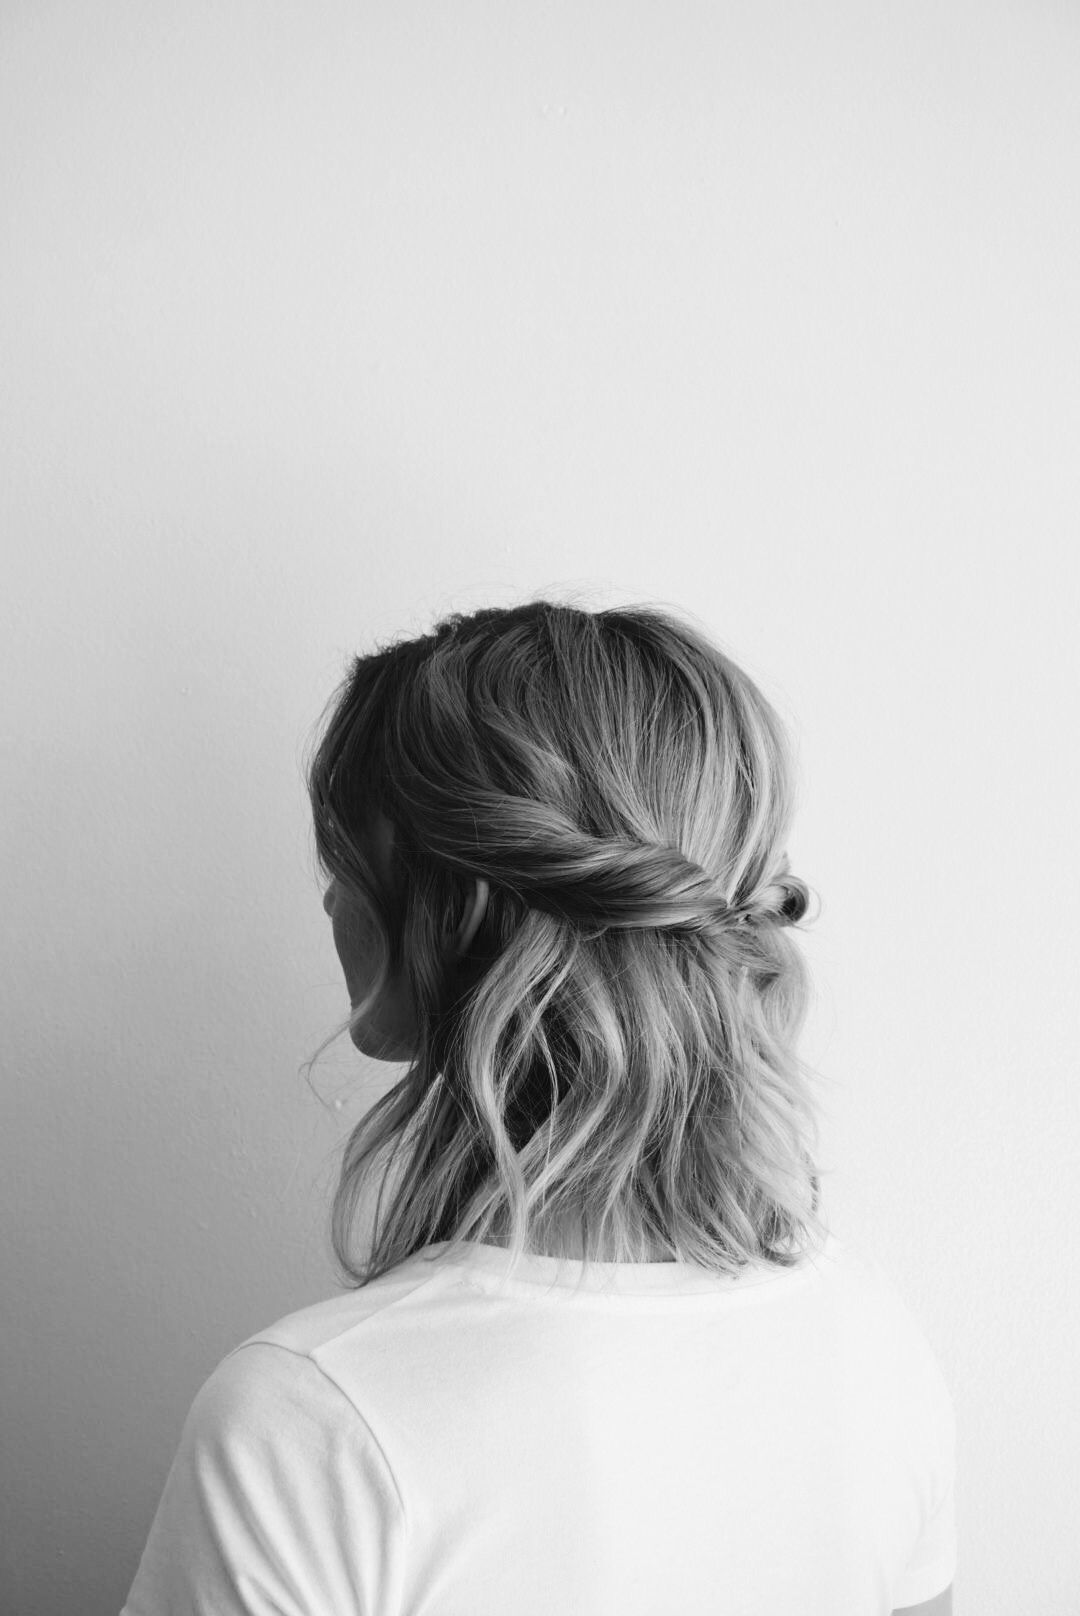 Pin by HelgaLy on Make up | Pinterest | Hair style, Hair goals and Lob